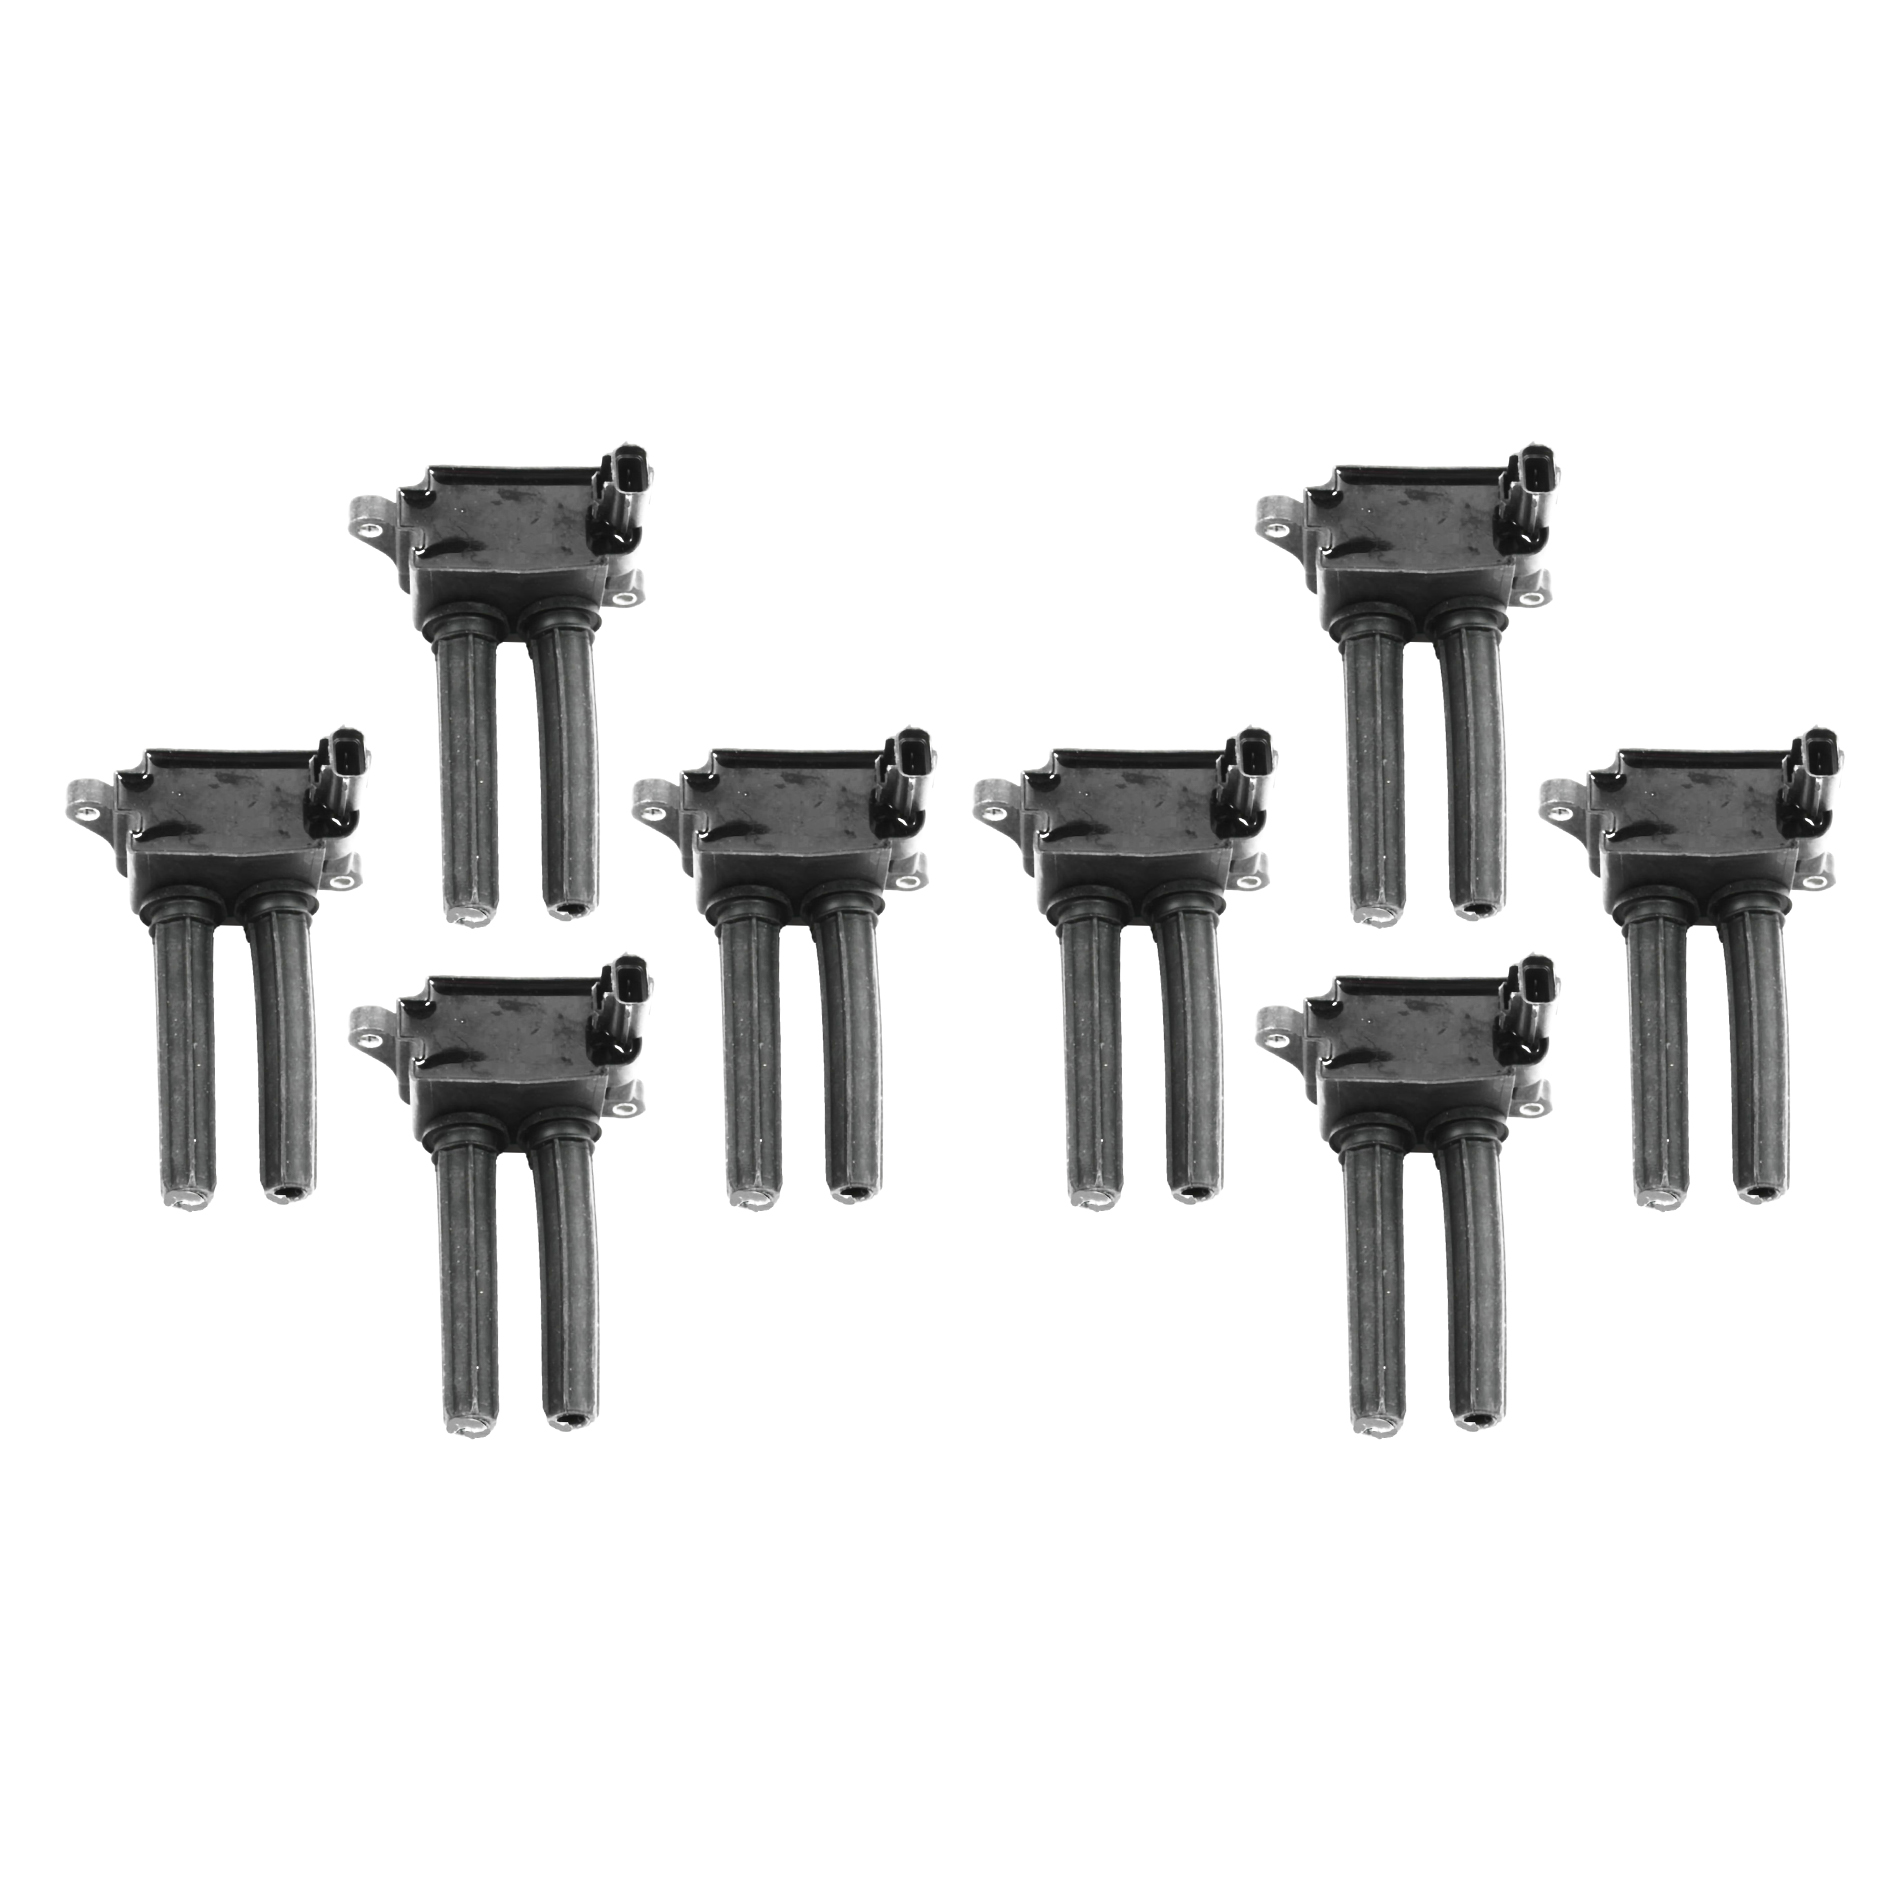 Set 8pcs Ignition Coil Uf504 For Chrysler 300 Dodge